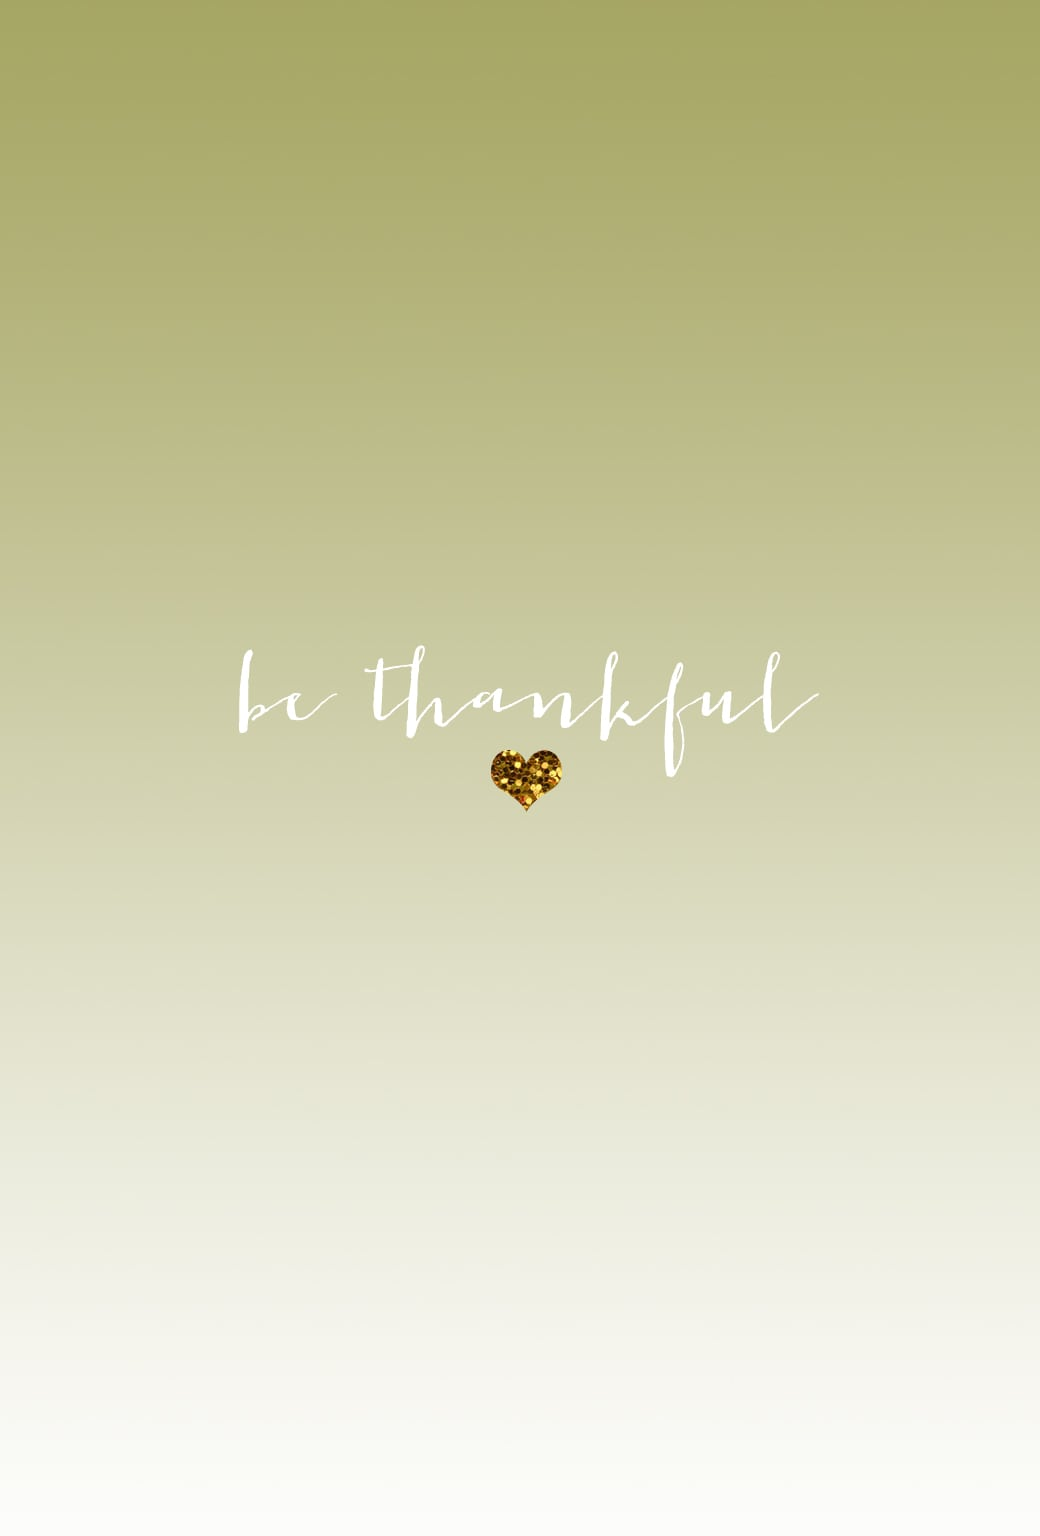 be thankful iphone wallpaper  u00bb lovely indeed